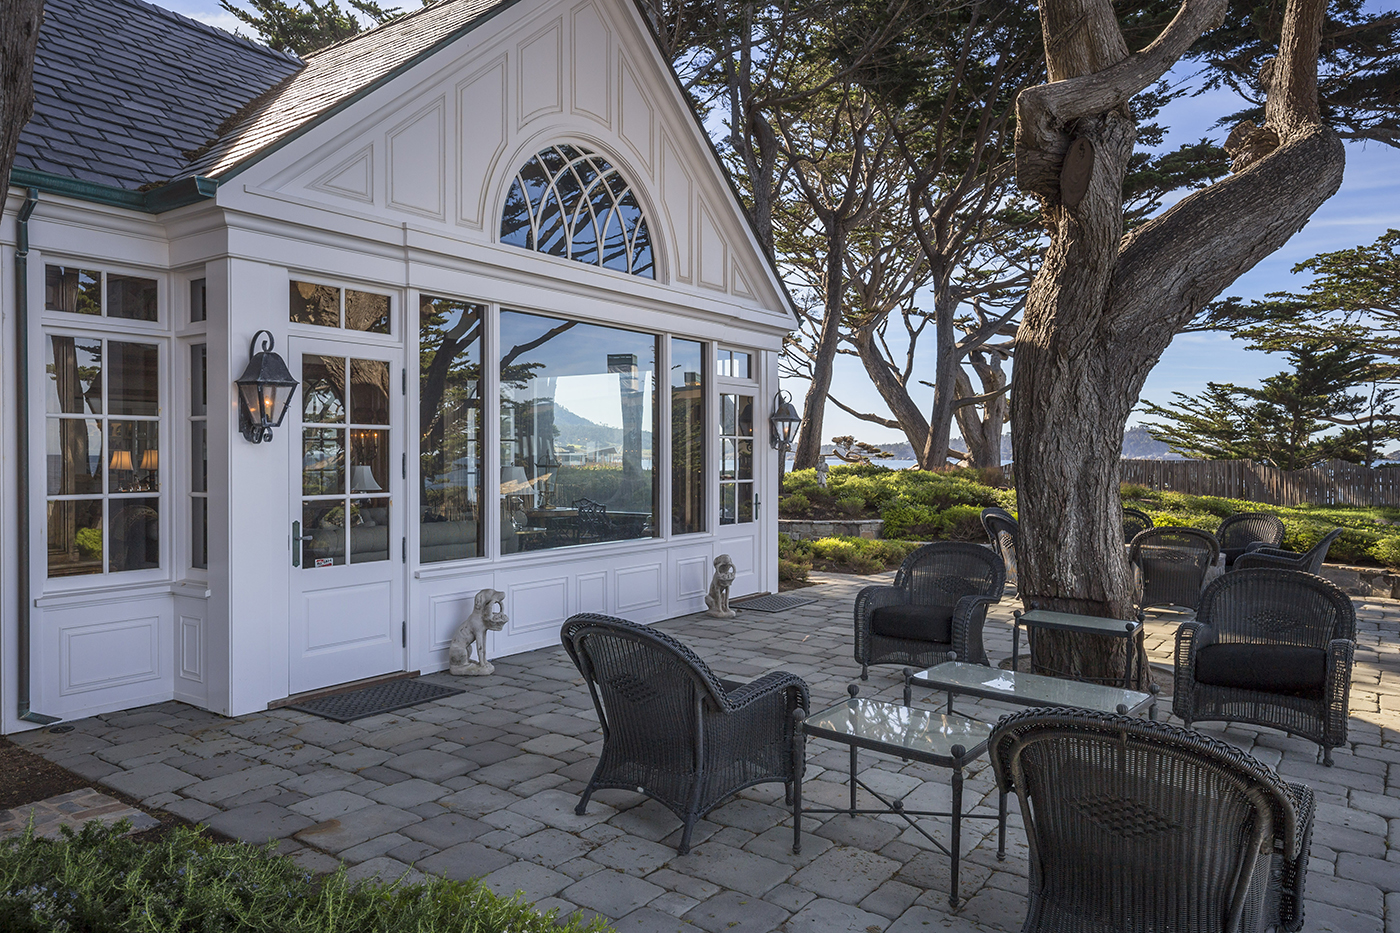 6 Ocean View - panelled gable end with bevelled glass arched window and curved muntins.jpg